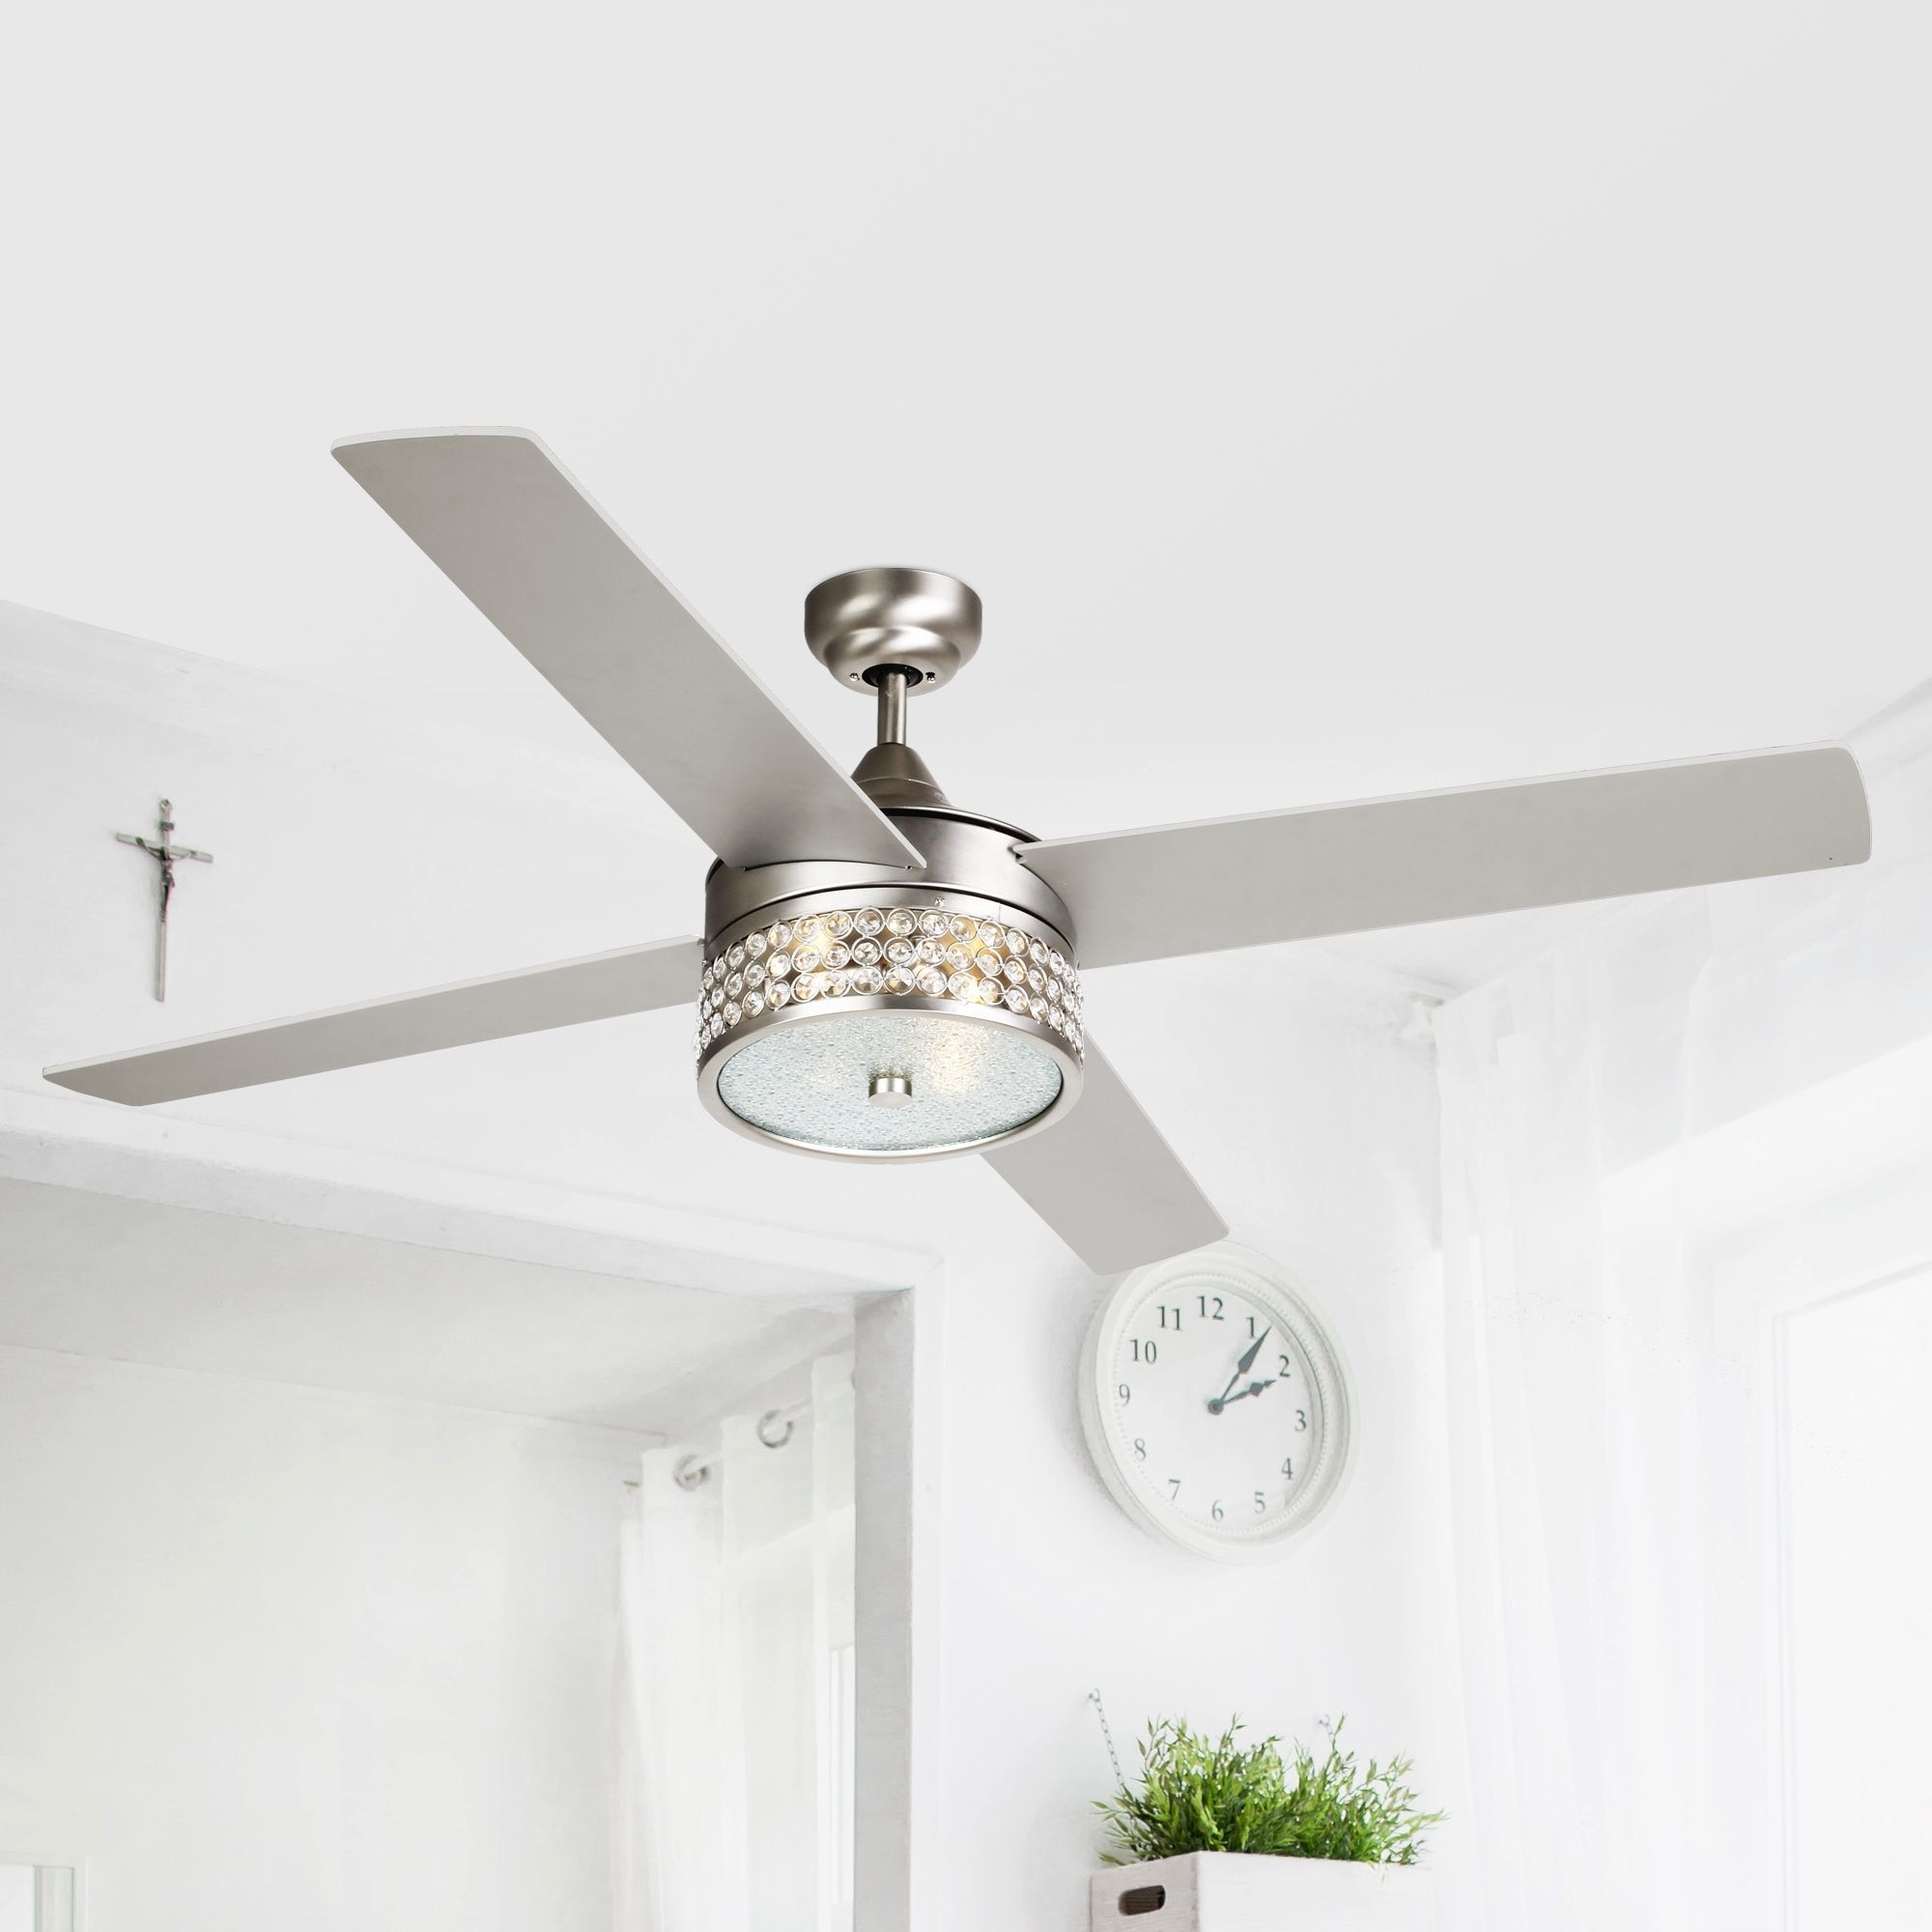 52 Inch Satin Nickel 4 Blades Crystal Ceiling Fan With Light Kit 52 On Sale Overstock 23388371